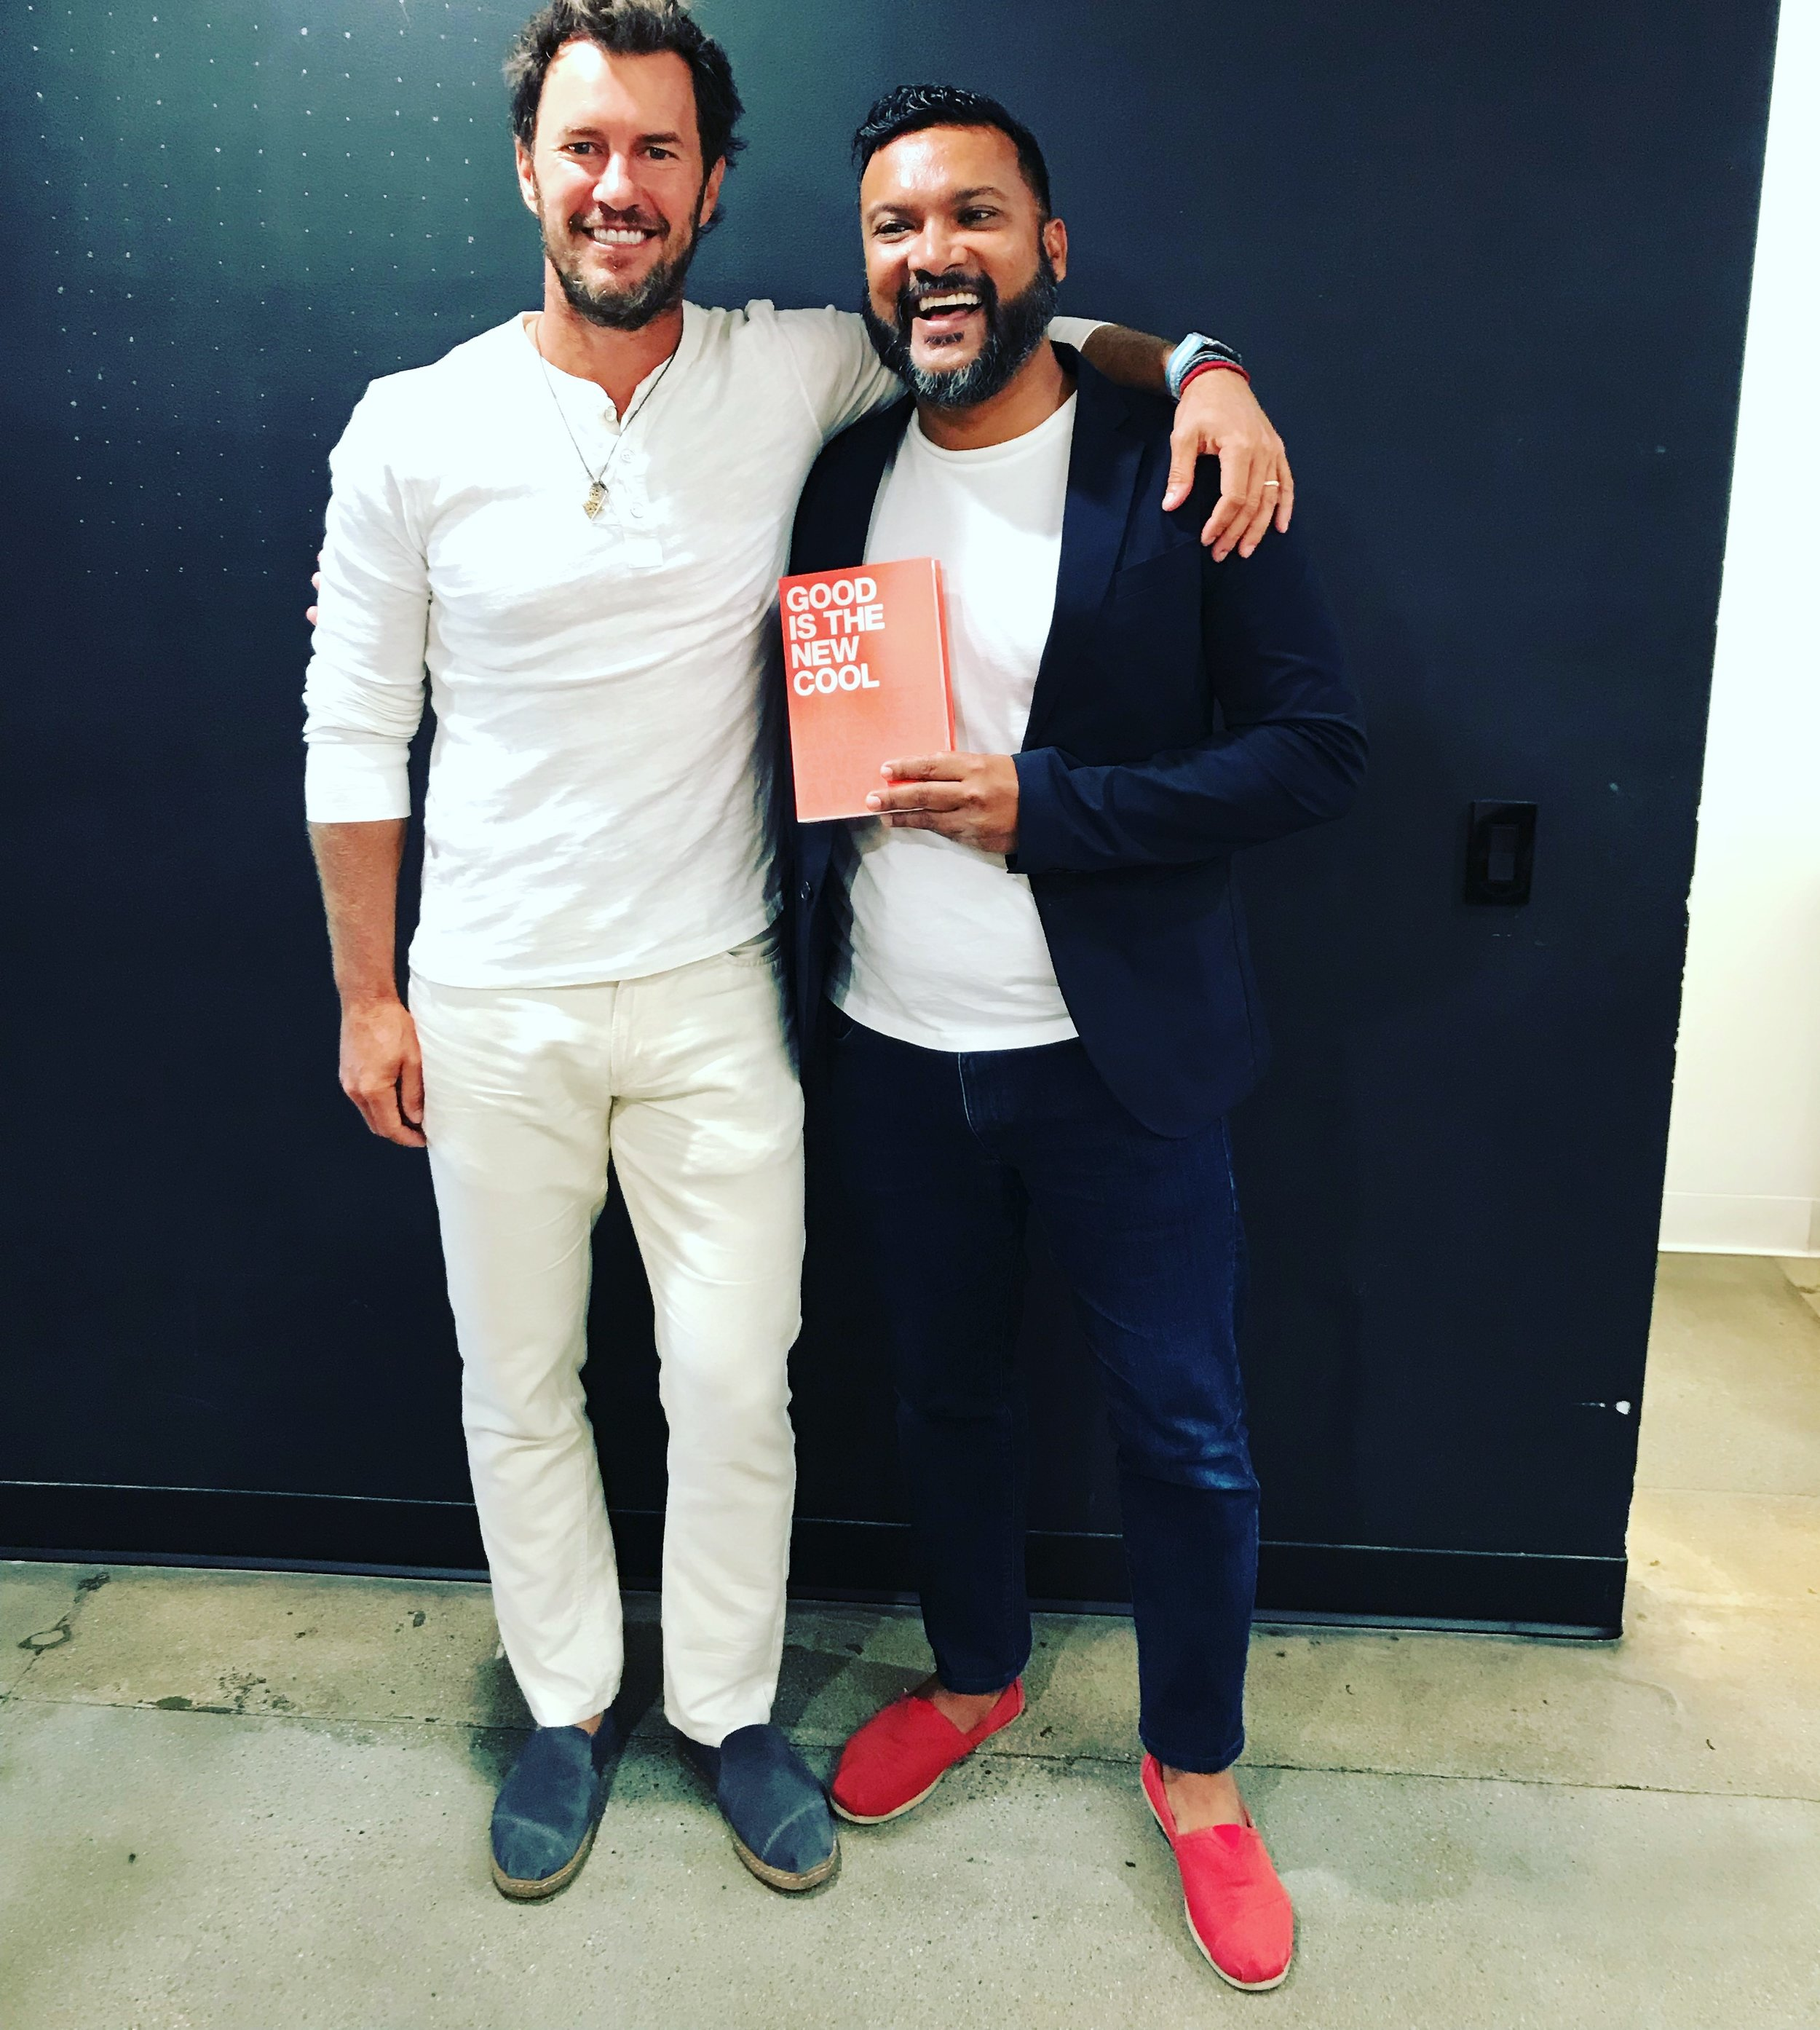 Afdhel with Tom's Shoes Founder Blake Mycoskie (wearing the pair of red Tom's Shoes he got married in).